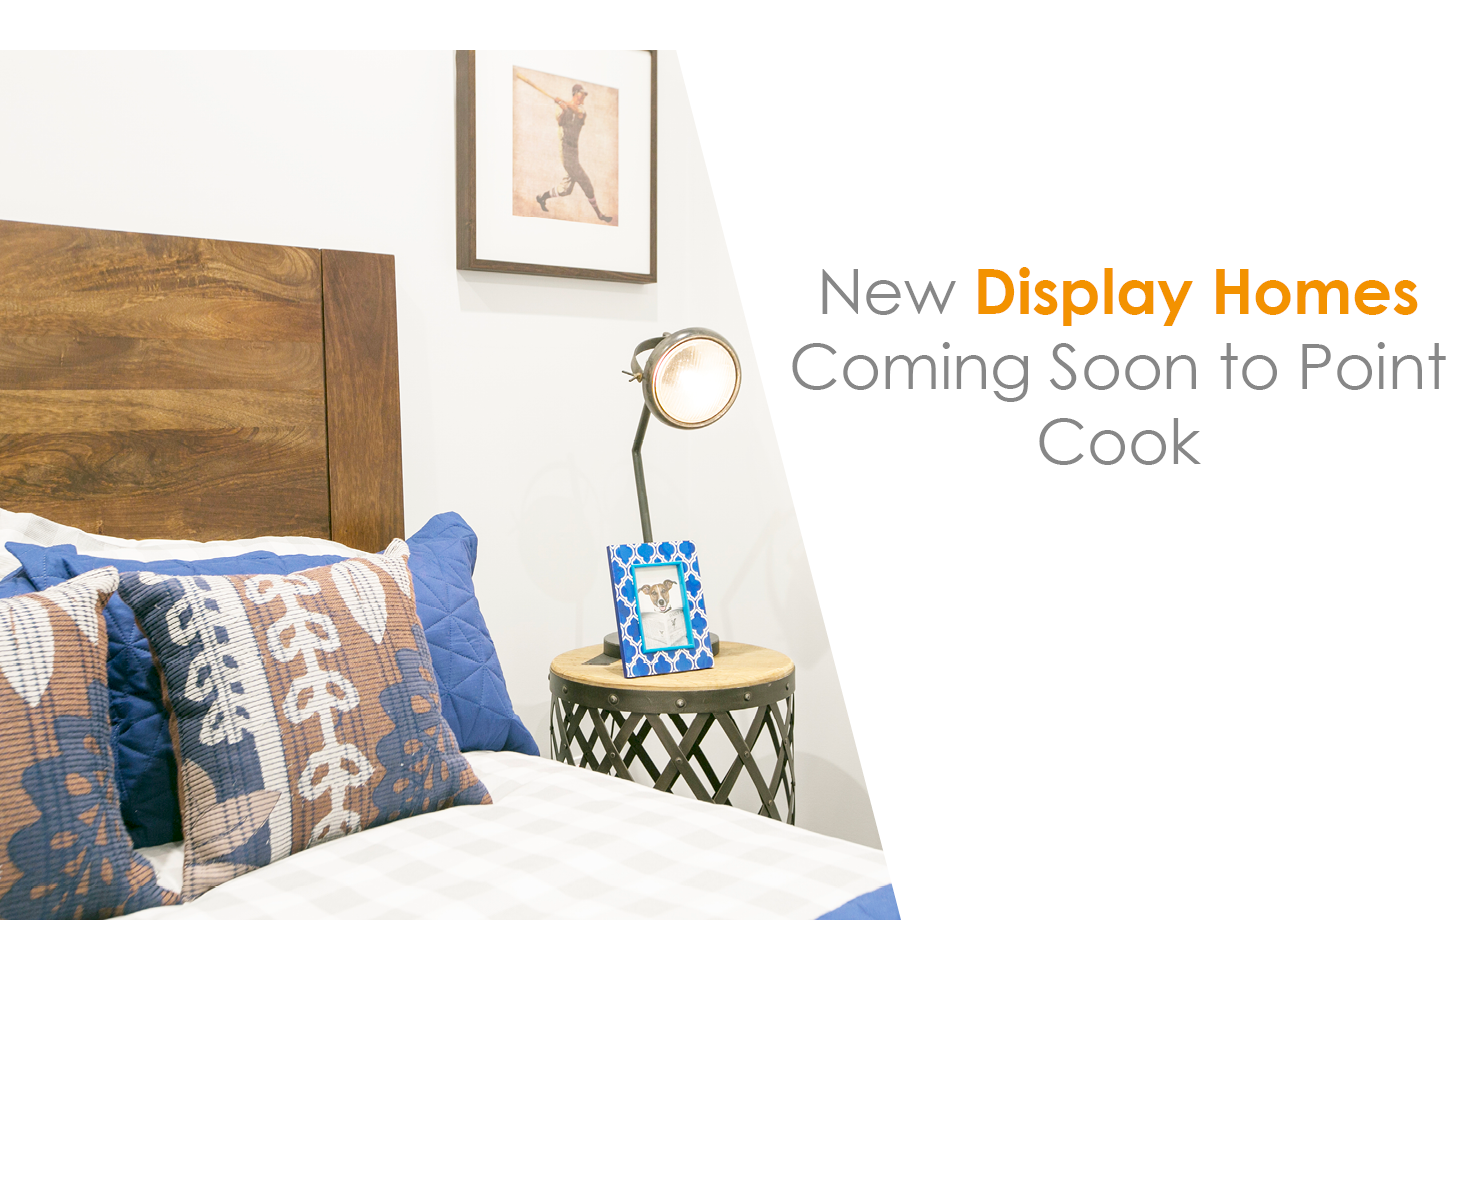 New-Displays-at-point-cook-coming-soon